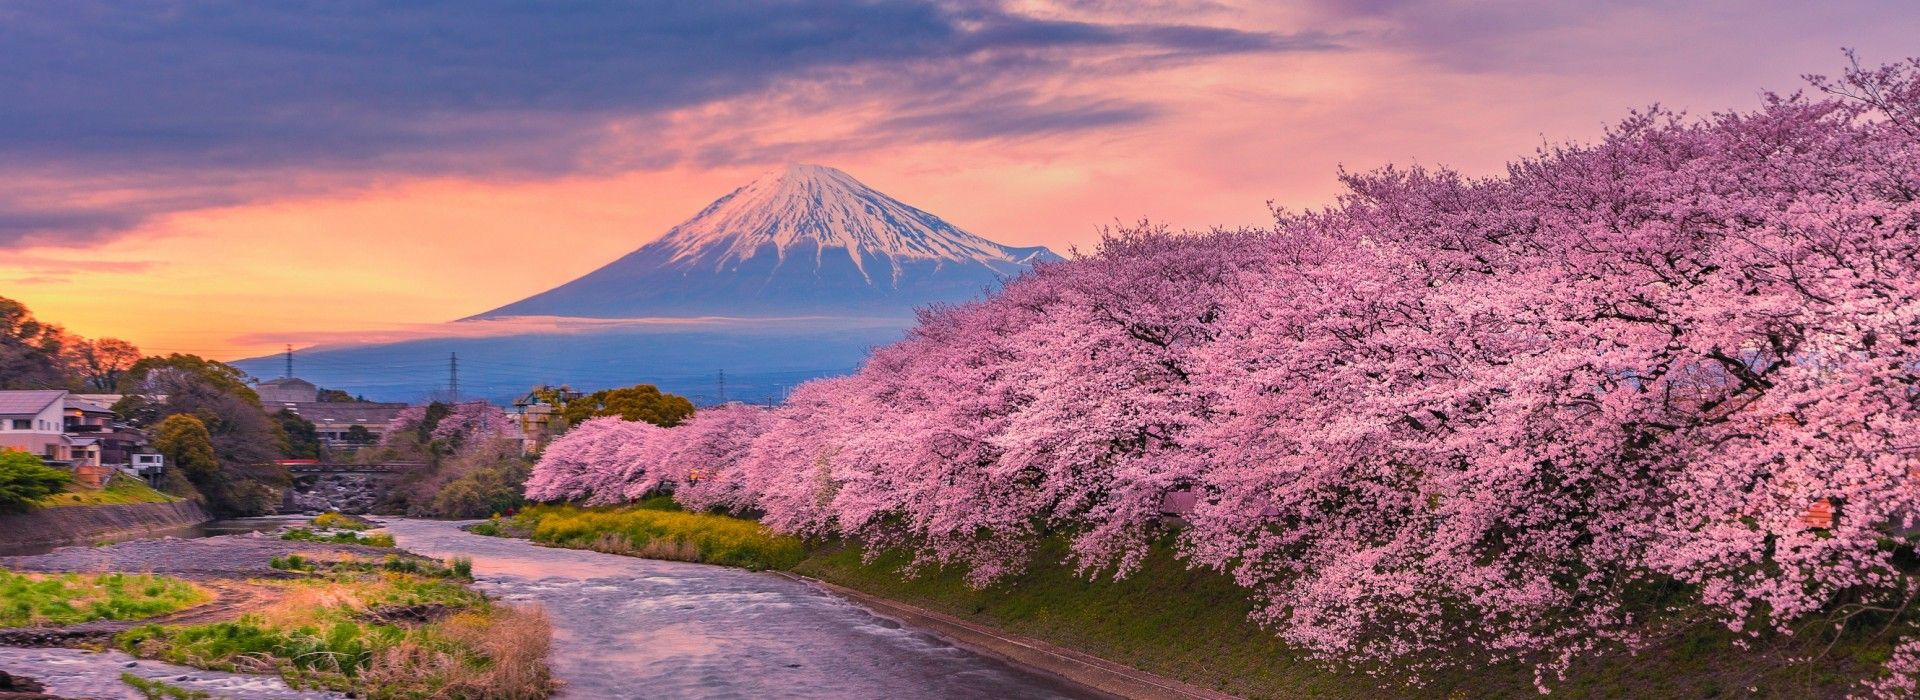 Air tours, road trips and transfers in Japan